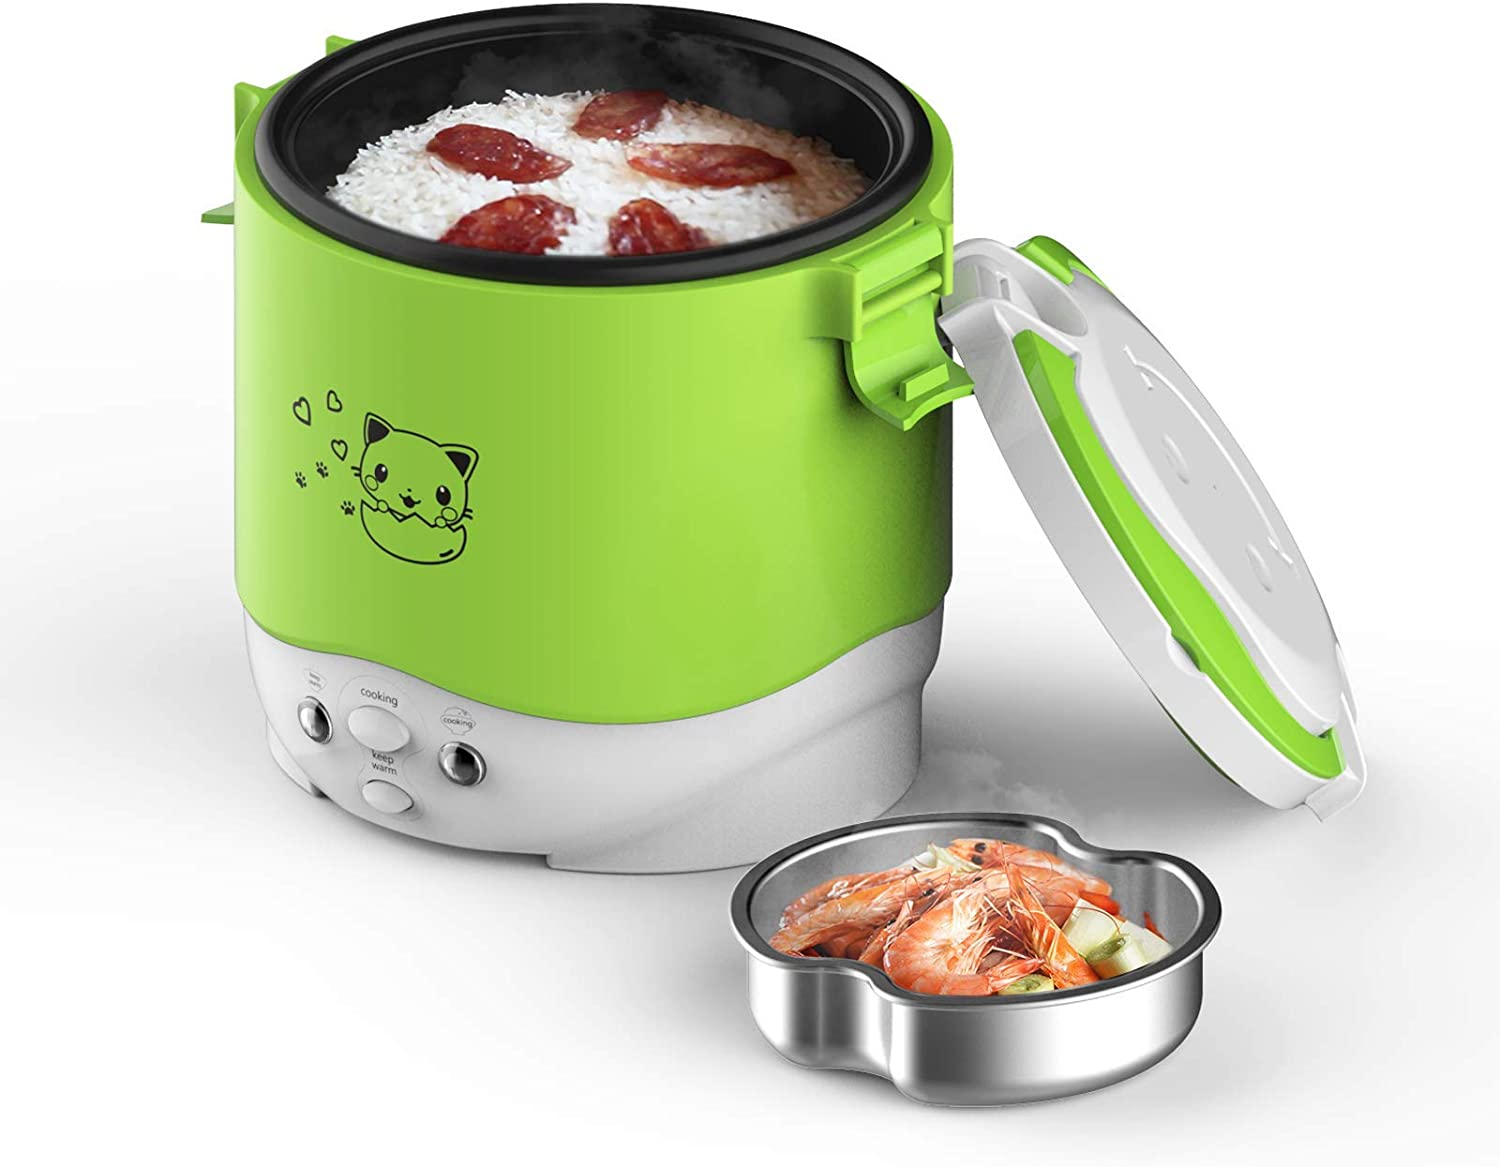 Mini Rice Cooker,Electric Lunch Box 1L Travel Rice Cooker Small 110V For Home, Cooking For Soup Porridge and Rice, Cooking Heating and Keeping Warm Function(Green)